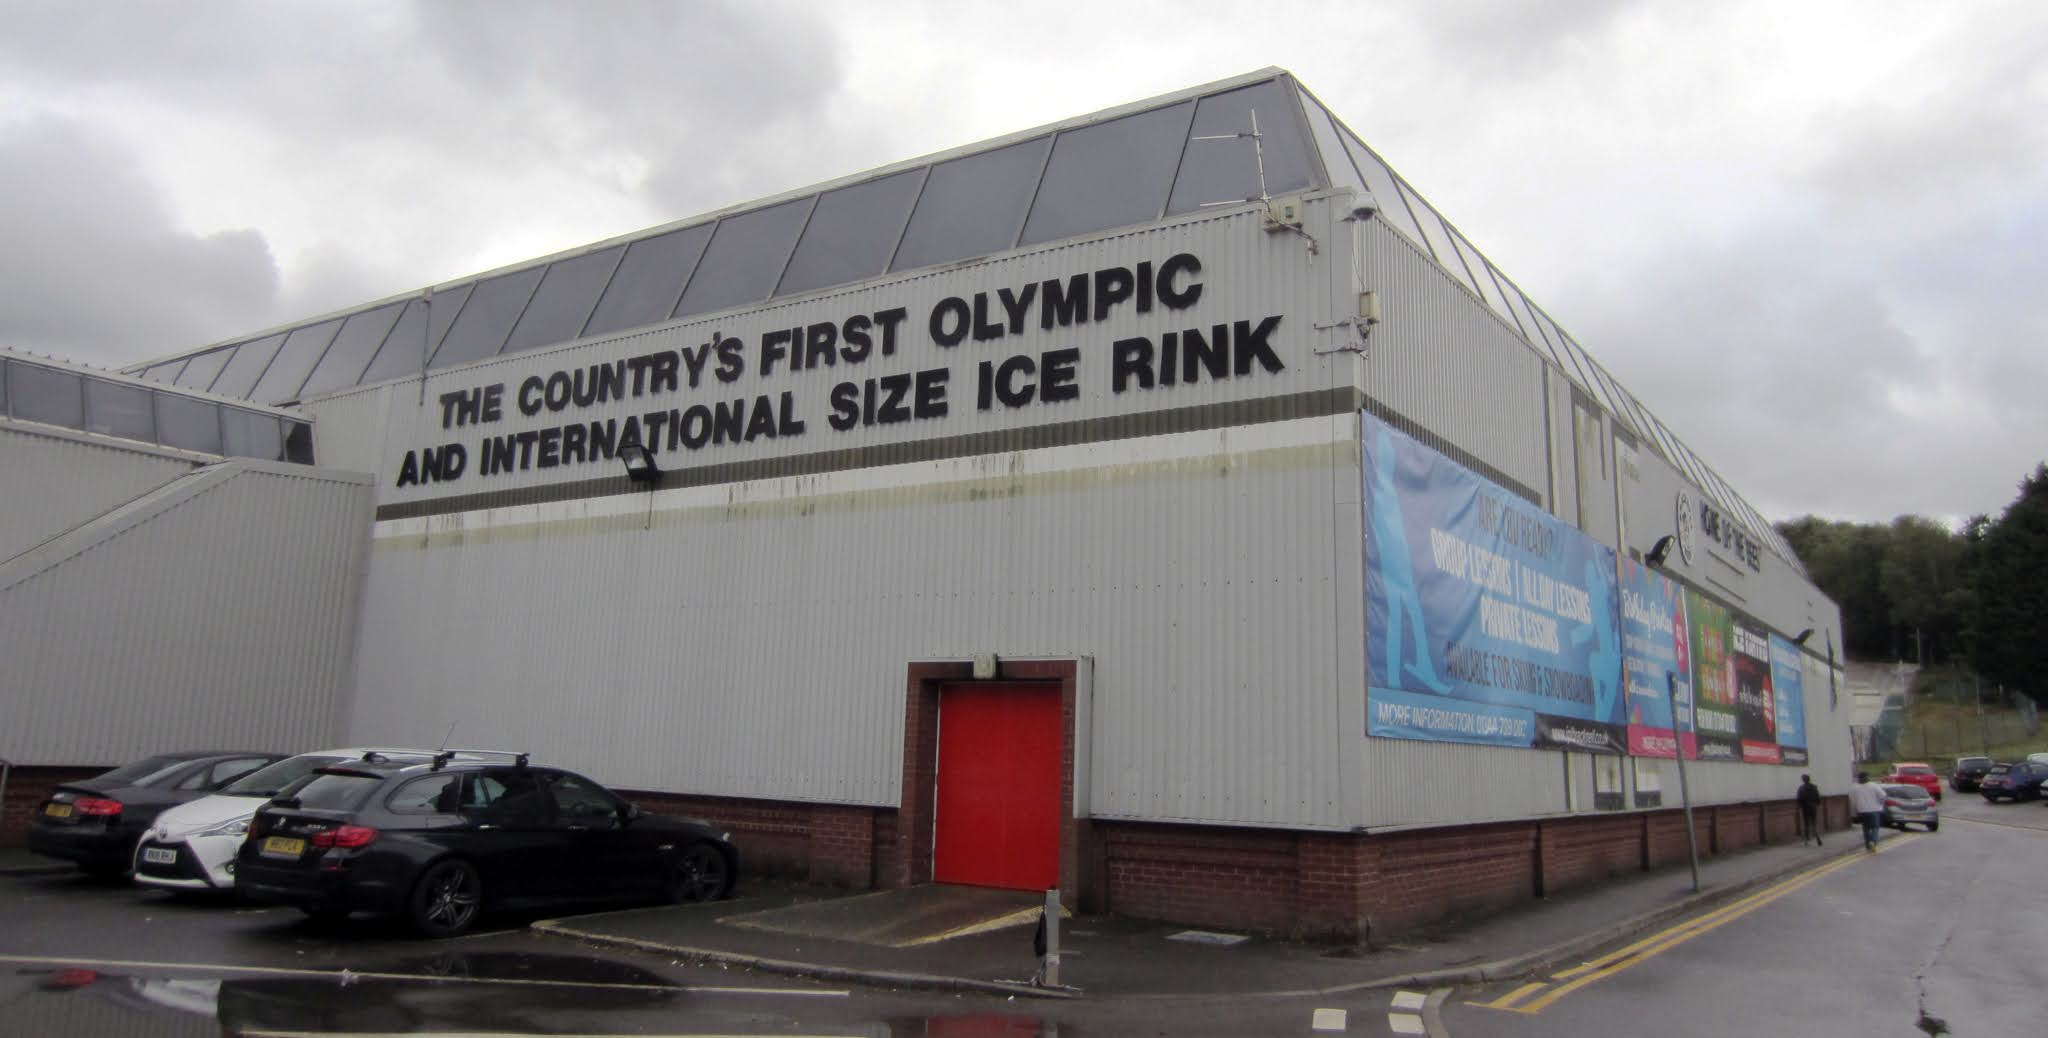 Exterior of the Bracknell Ice Rink